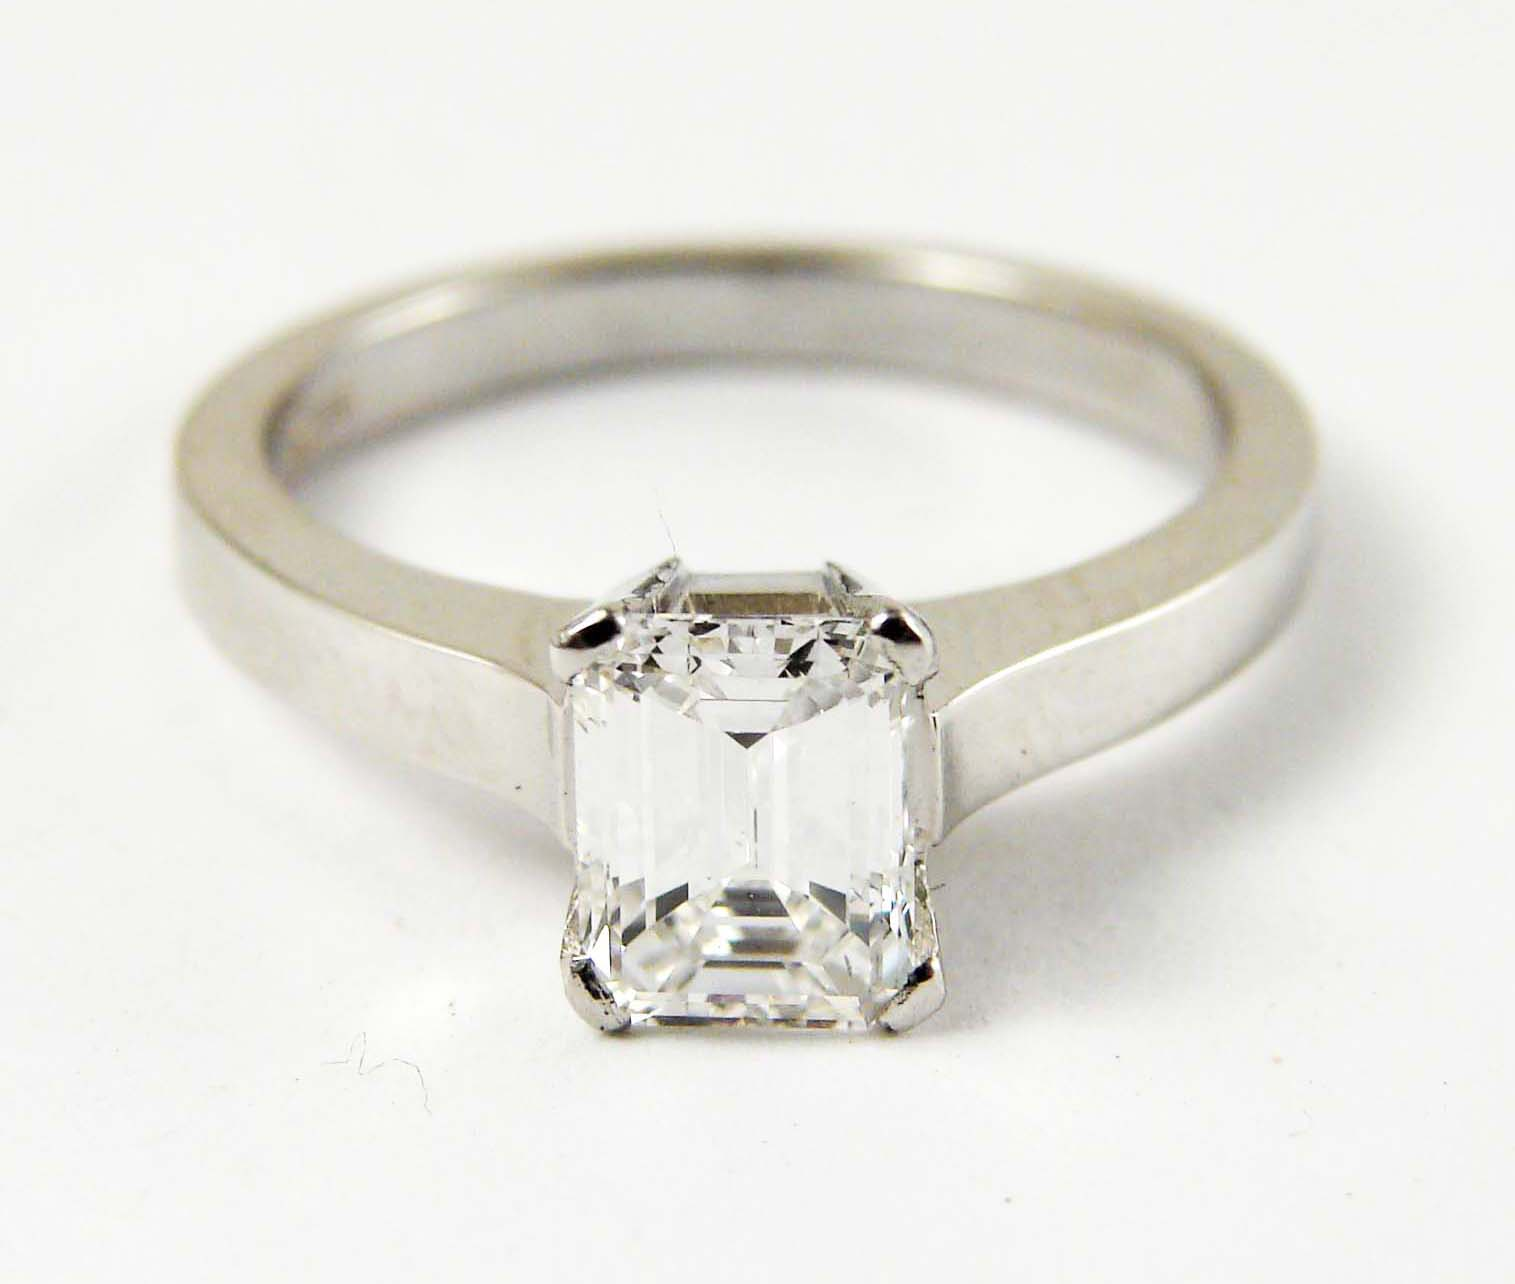 1.25ct emerald cut diamond centerstone, 18kt white gold, a modern twist to a classic look  Starting at $9500 for this stone size andVS clarity FG colour  Can be customizable with any stone, size, metal etc.